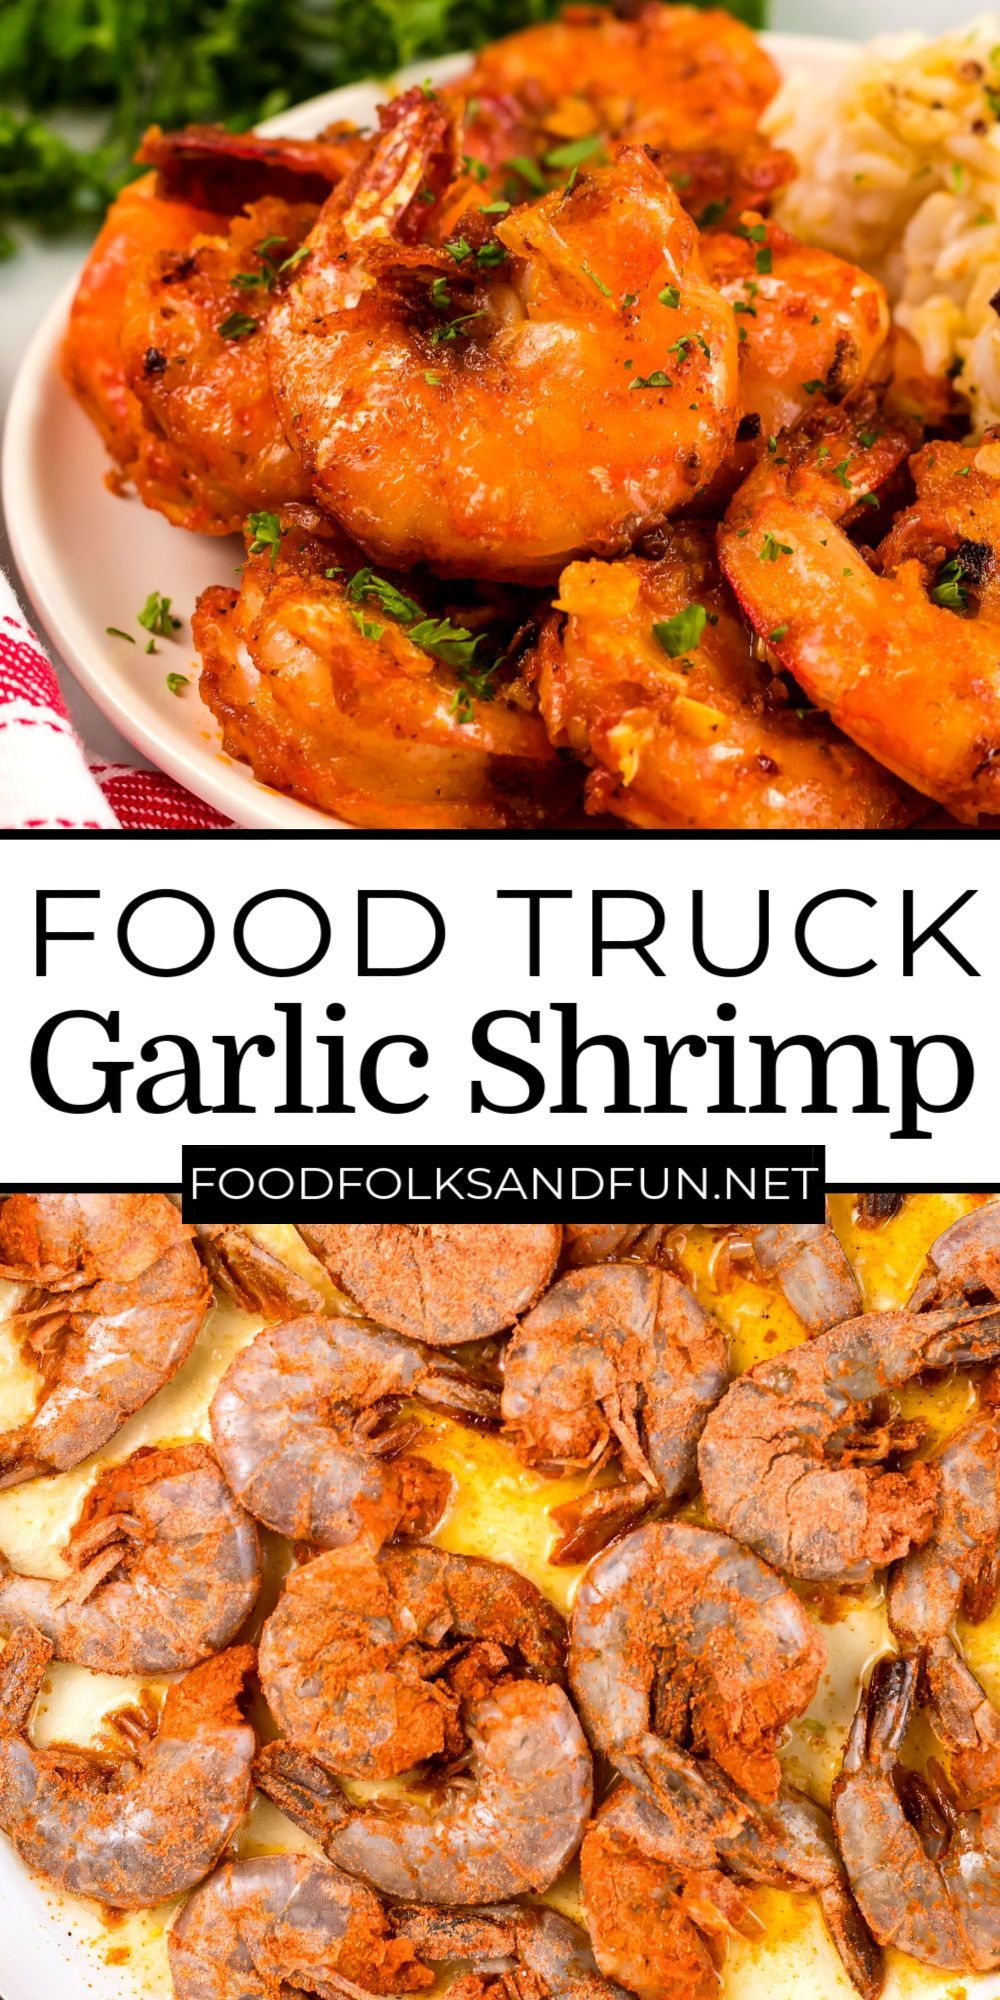 This copycat Hawaiian Food Truck Garlic Shrimp recipe is so succulent! This recipe costs $9.19 to make which is just $4.60 per serving!